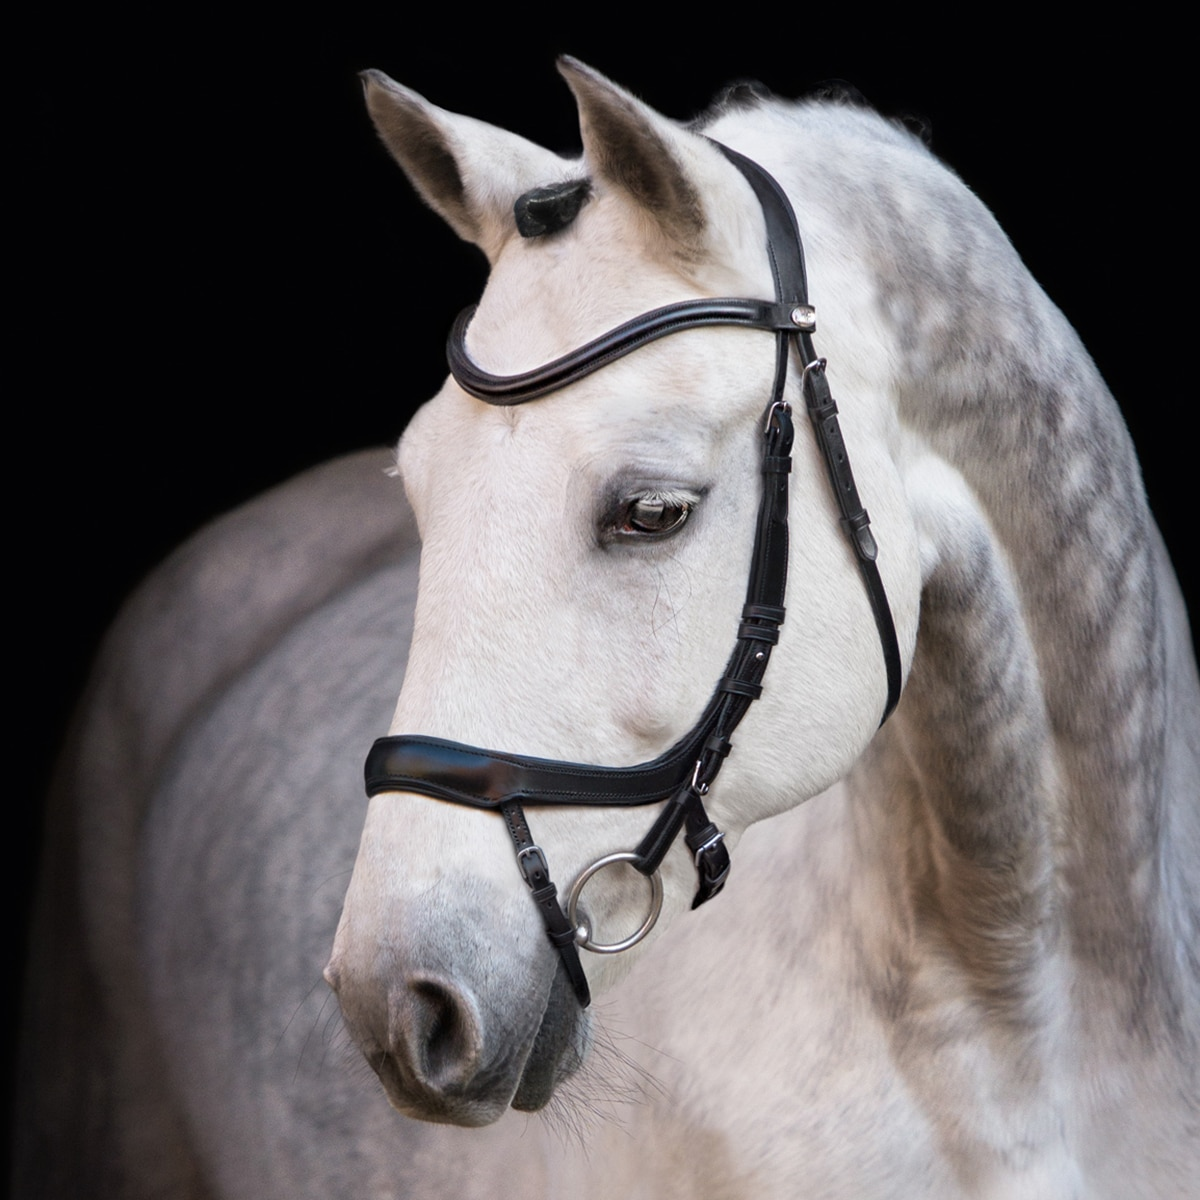 Schockemoehle Equitus Alpha Anatomical Bridle with Rubber Reins